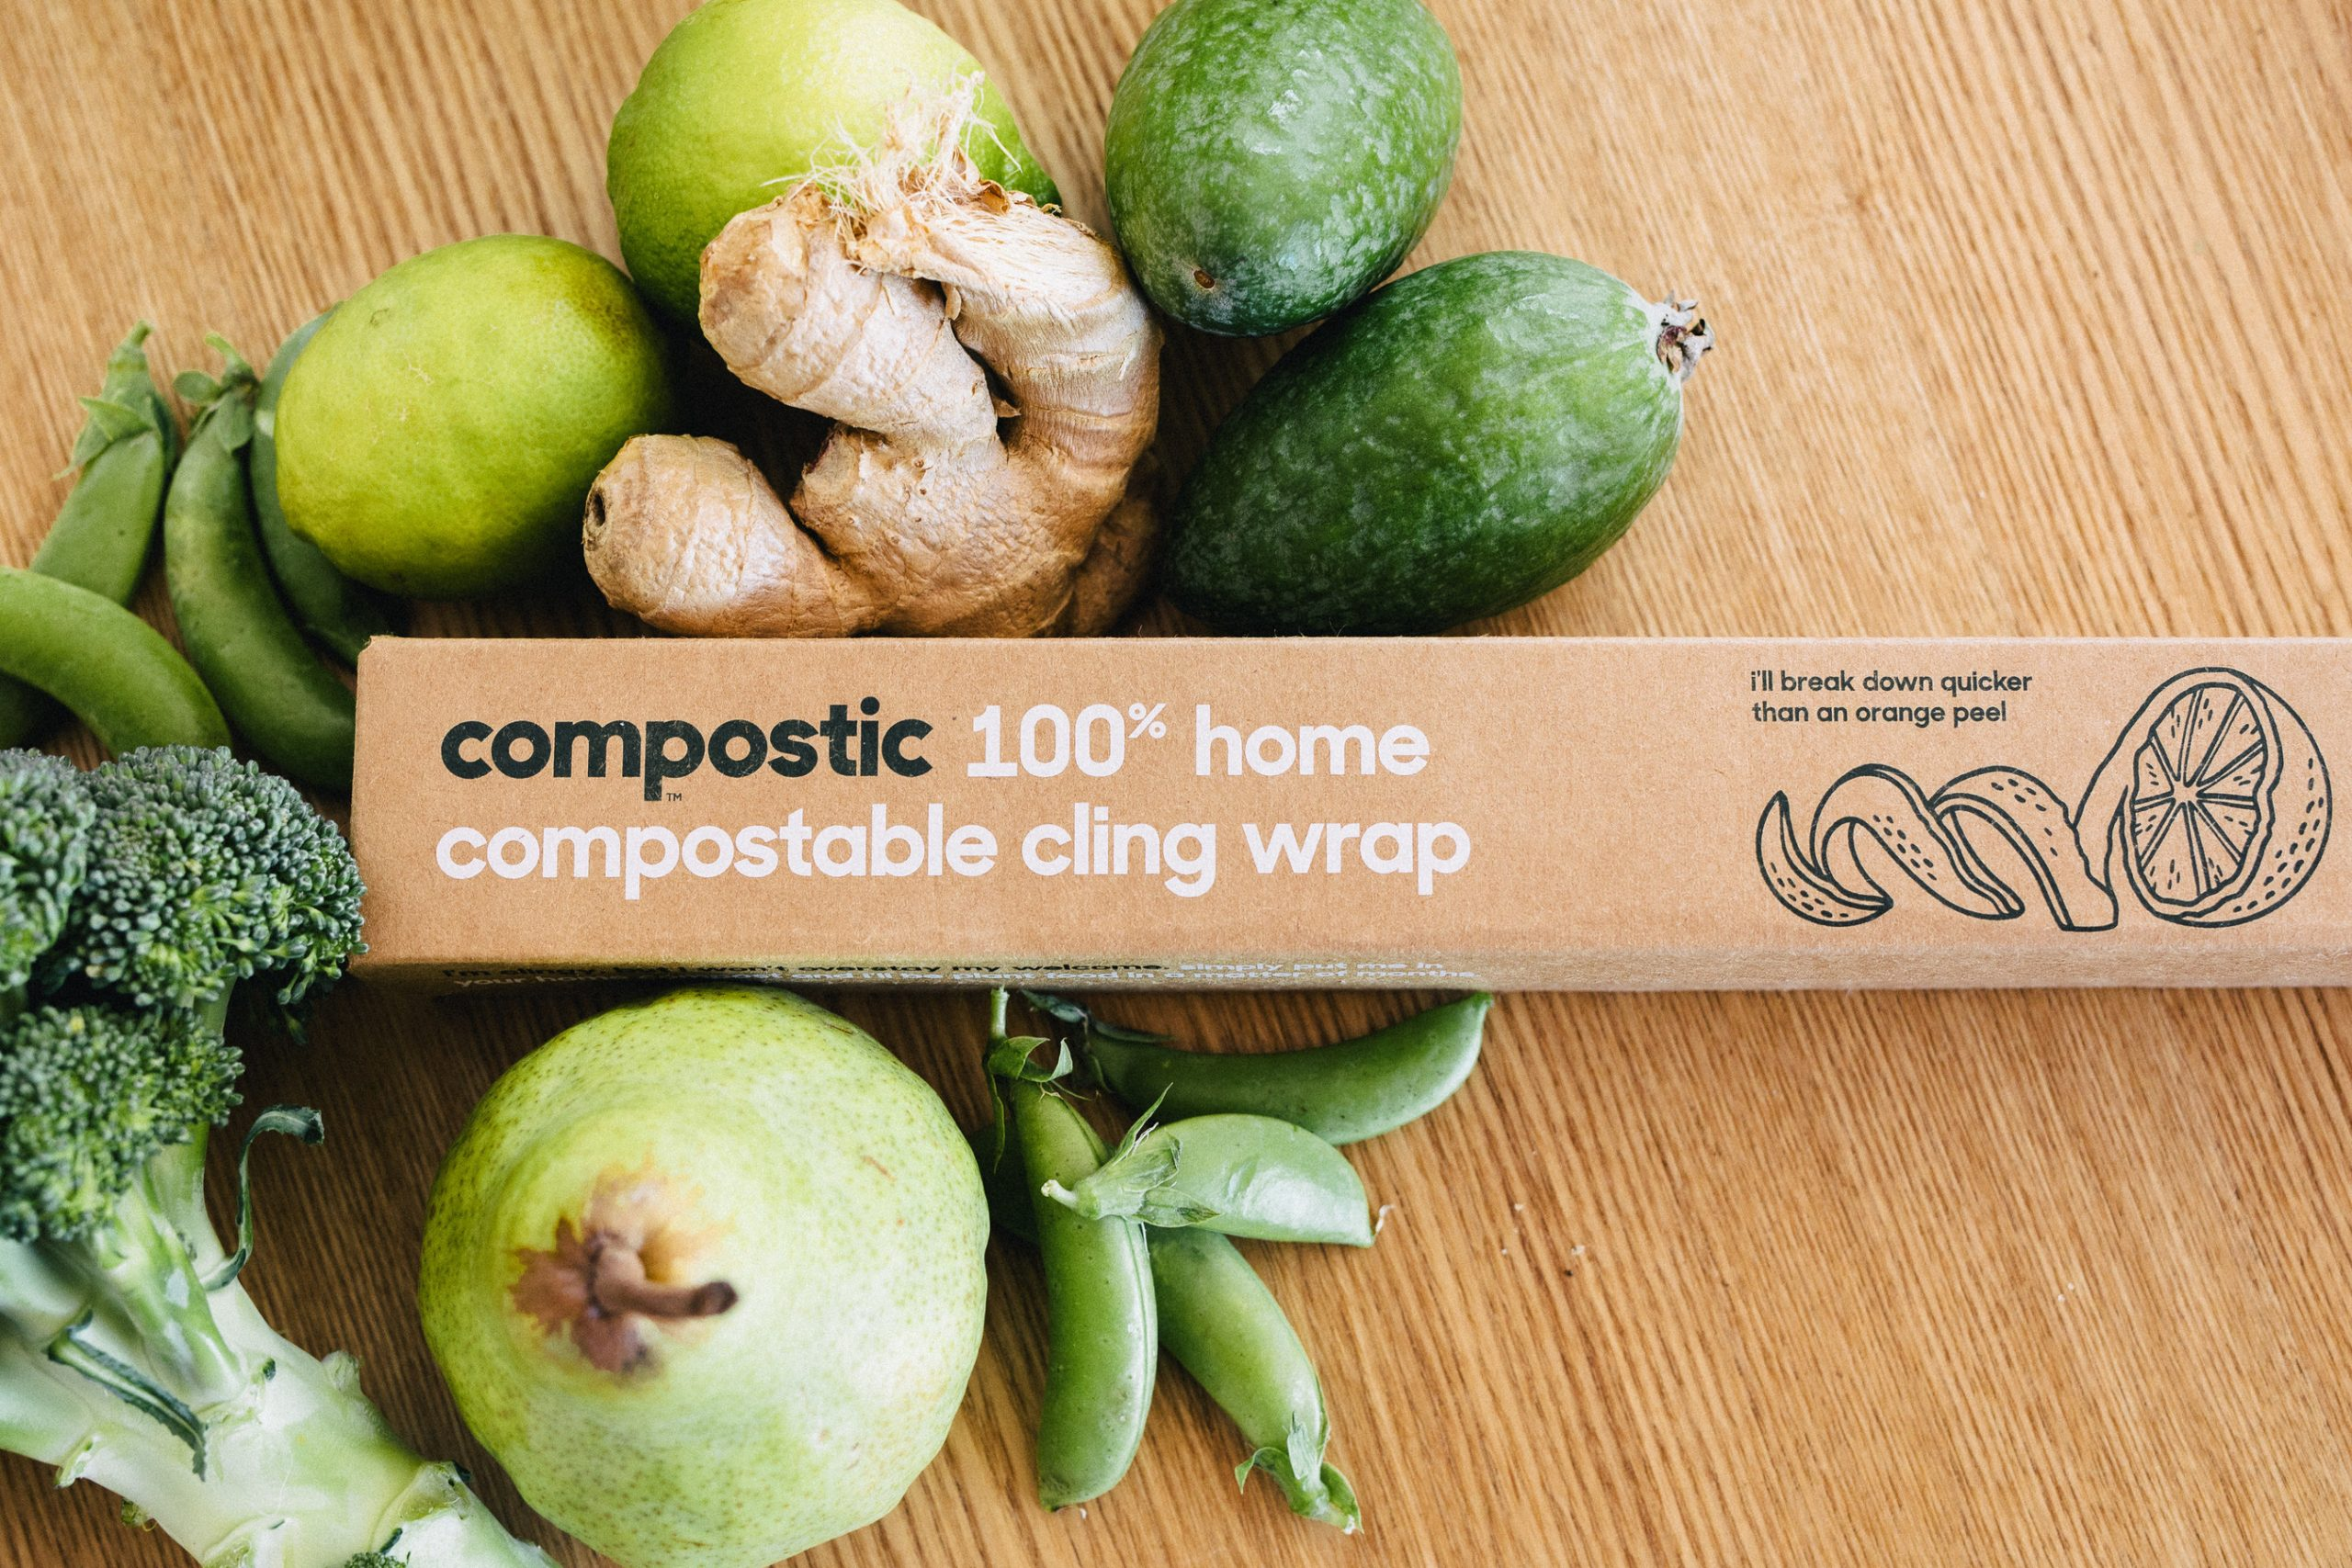 Compostic Launches Certified Home-Compostable Cling Wrap and Resealable Bags in the U.S.